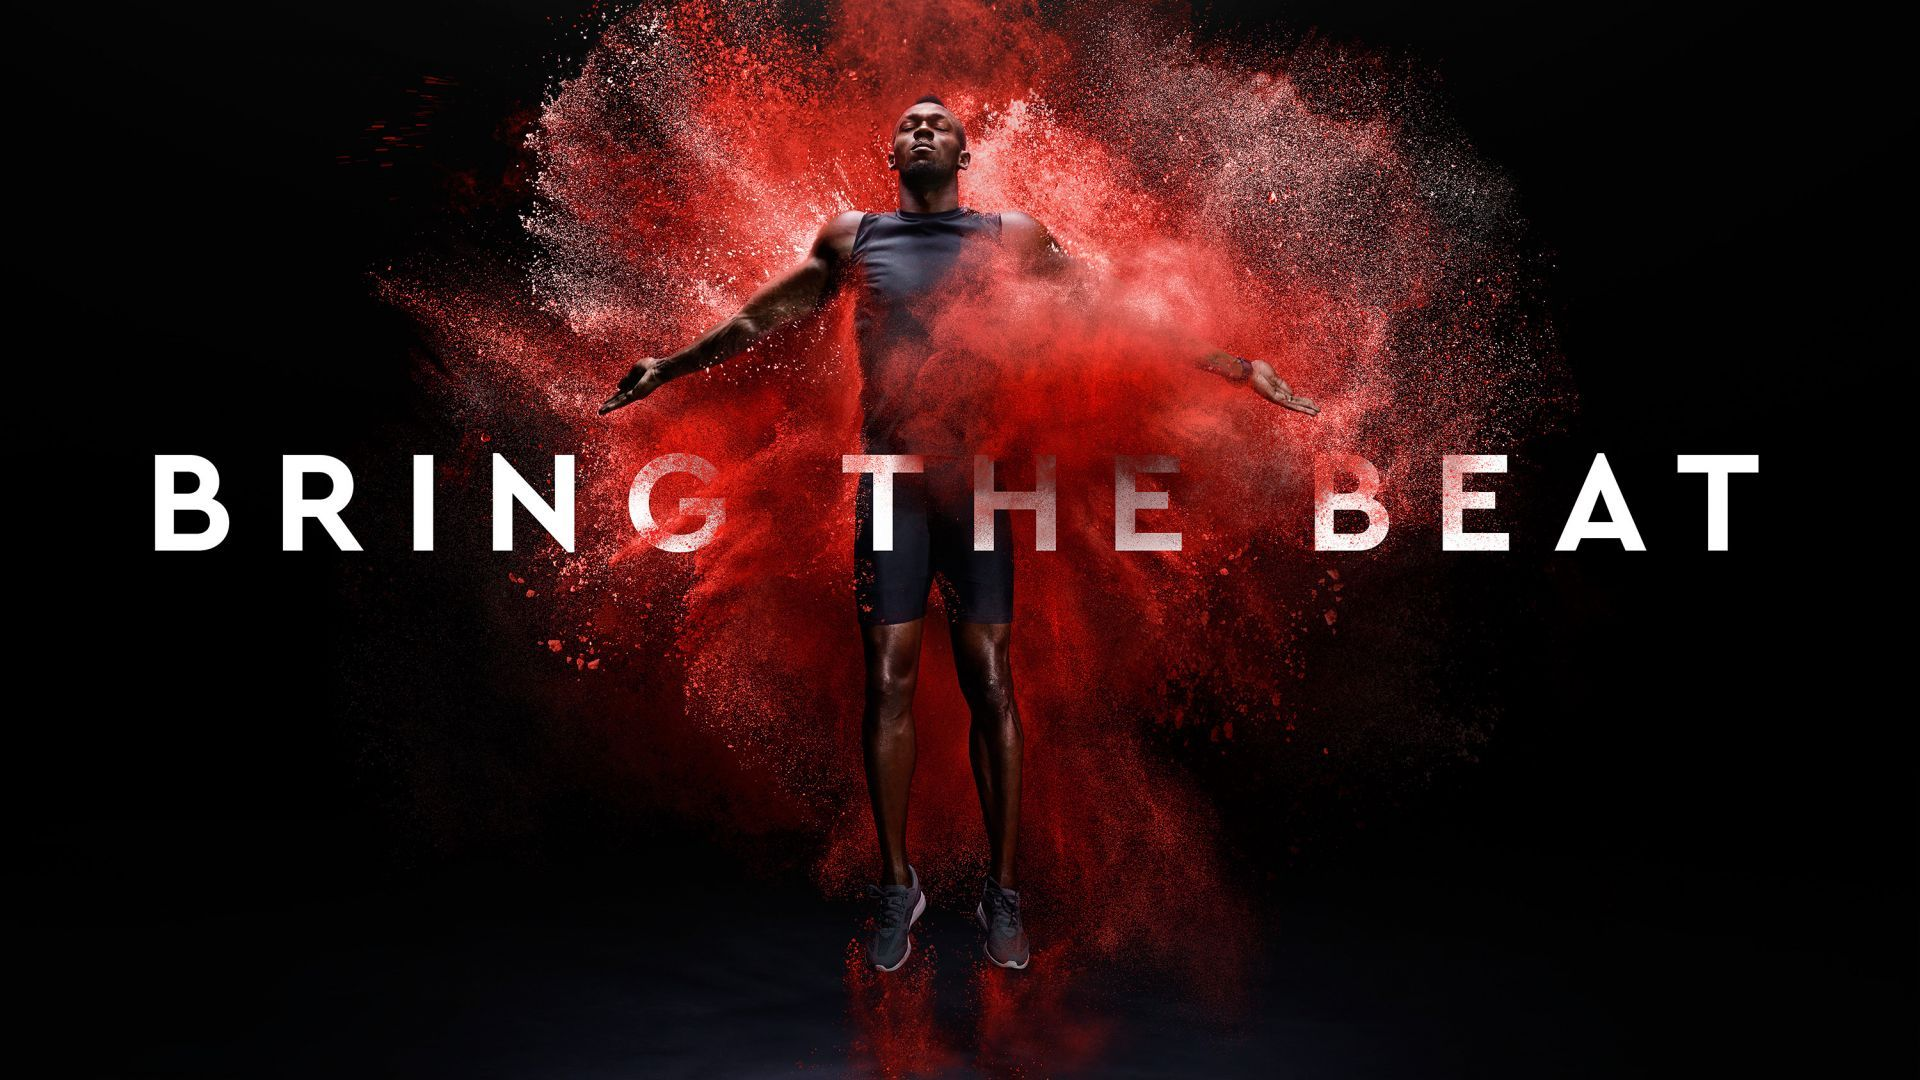 Download Wallpapers Of Usain Bolt, Bring The Beat, HD